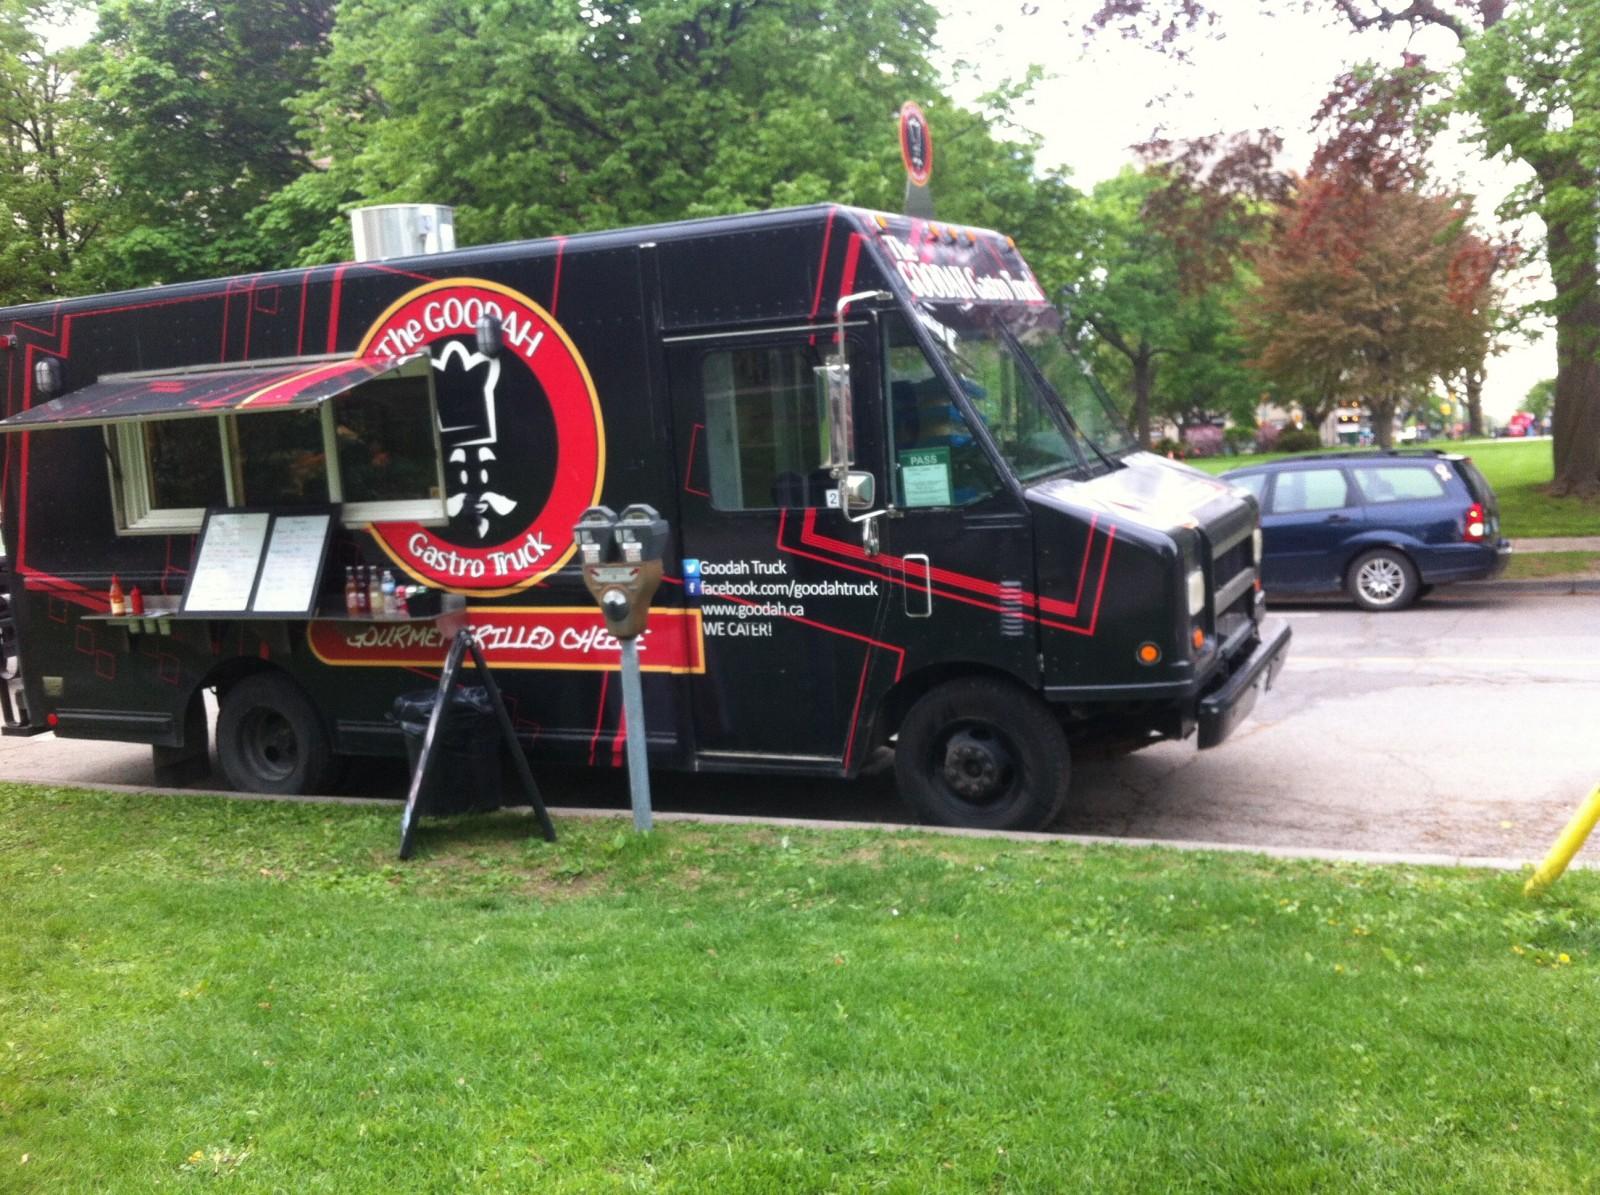 Downtown London Hopes Food Truck Business Can Grow